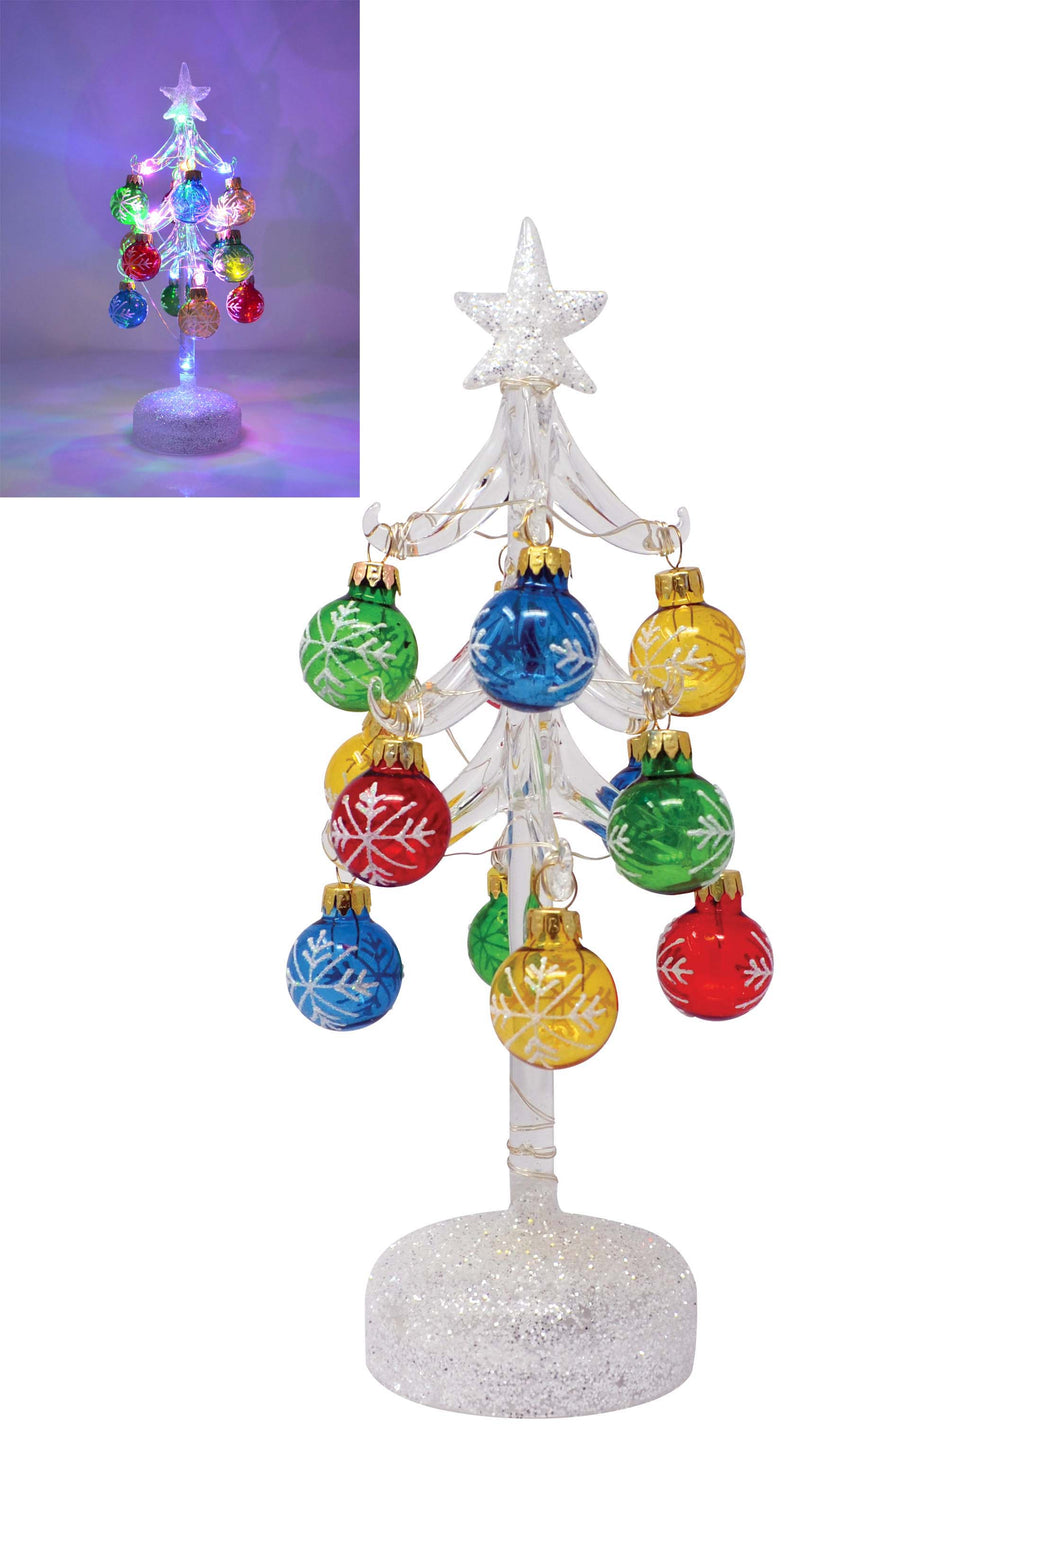 LIGHT UP GLASS TREE WITH 12 SNOWFLAKE ORNAMENTS